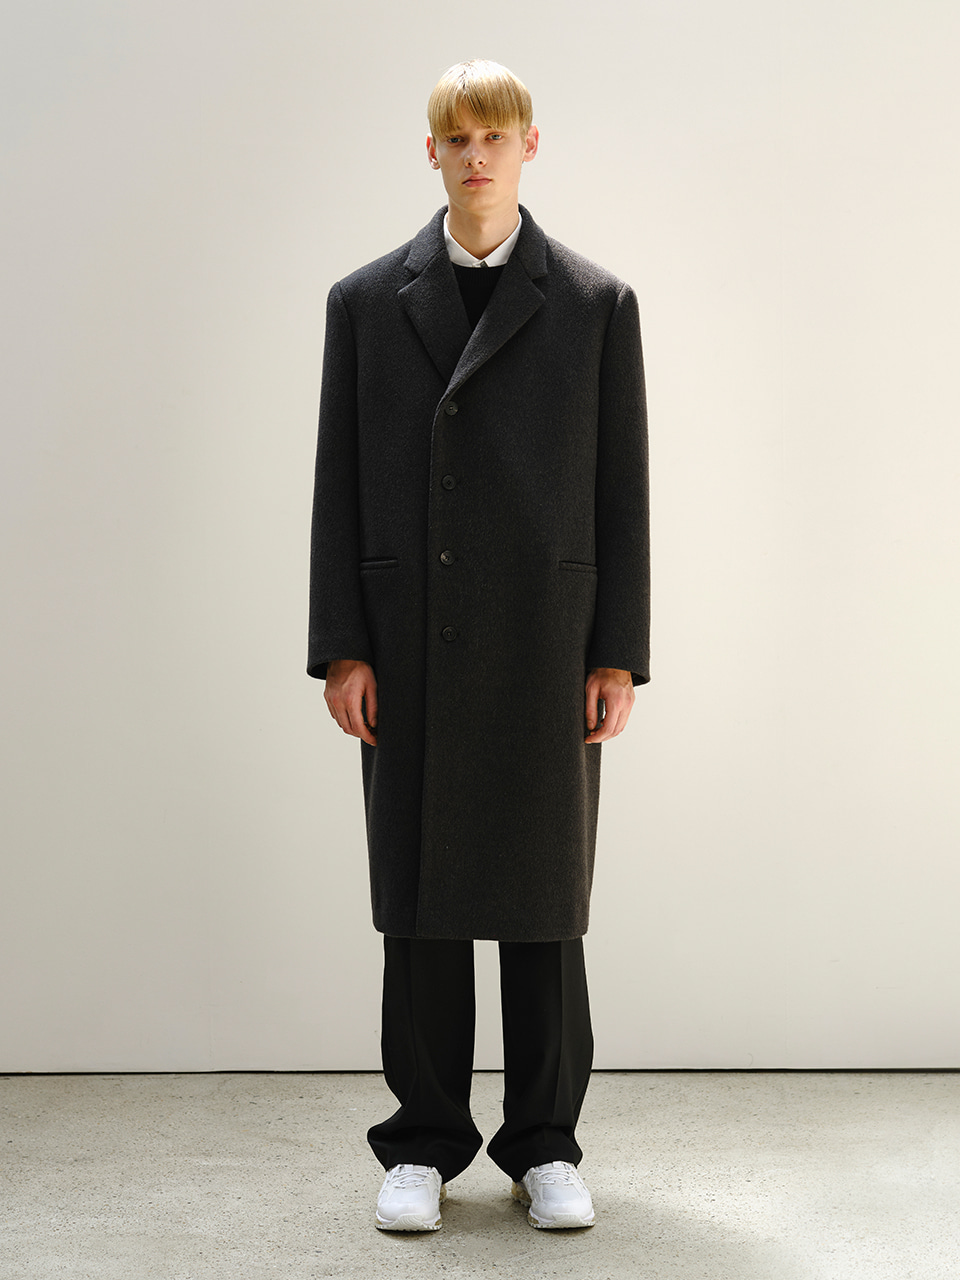 [FW20] CASHMERE 4 BUTTON SINGLE COAT(Dark Grey) IEY [FW20] CASHMERE 4 BUTTON SINGLE COAT(Dark Grey)